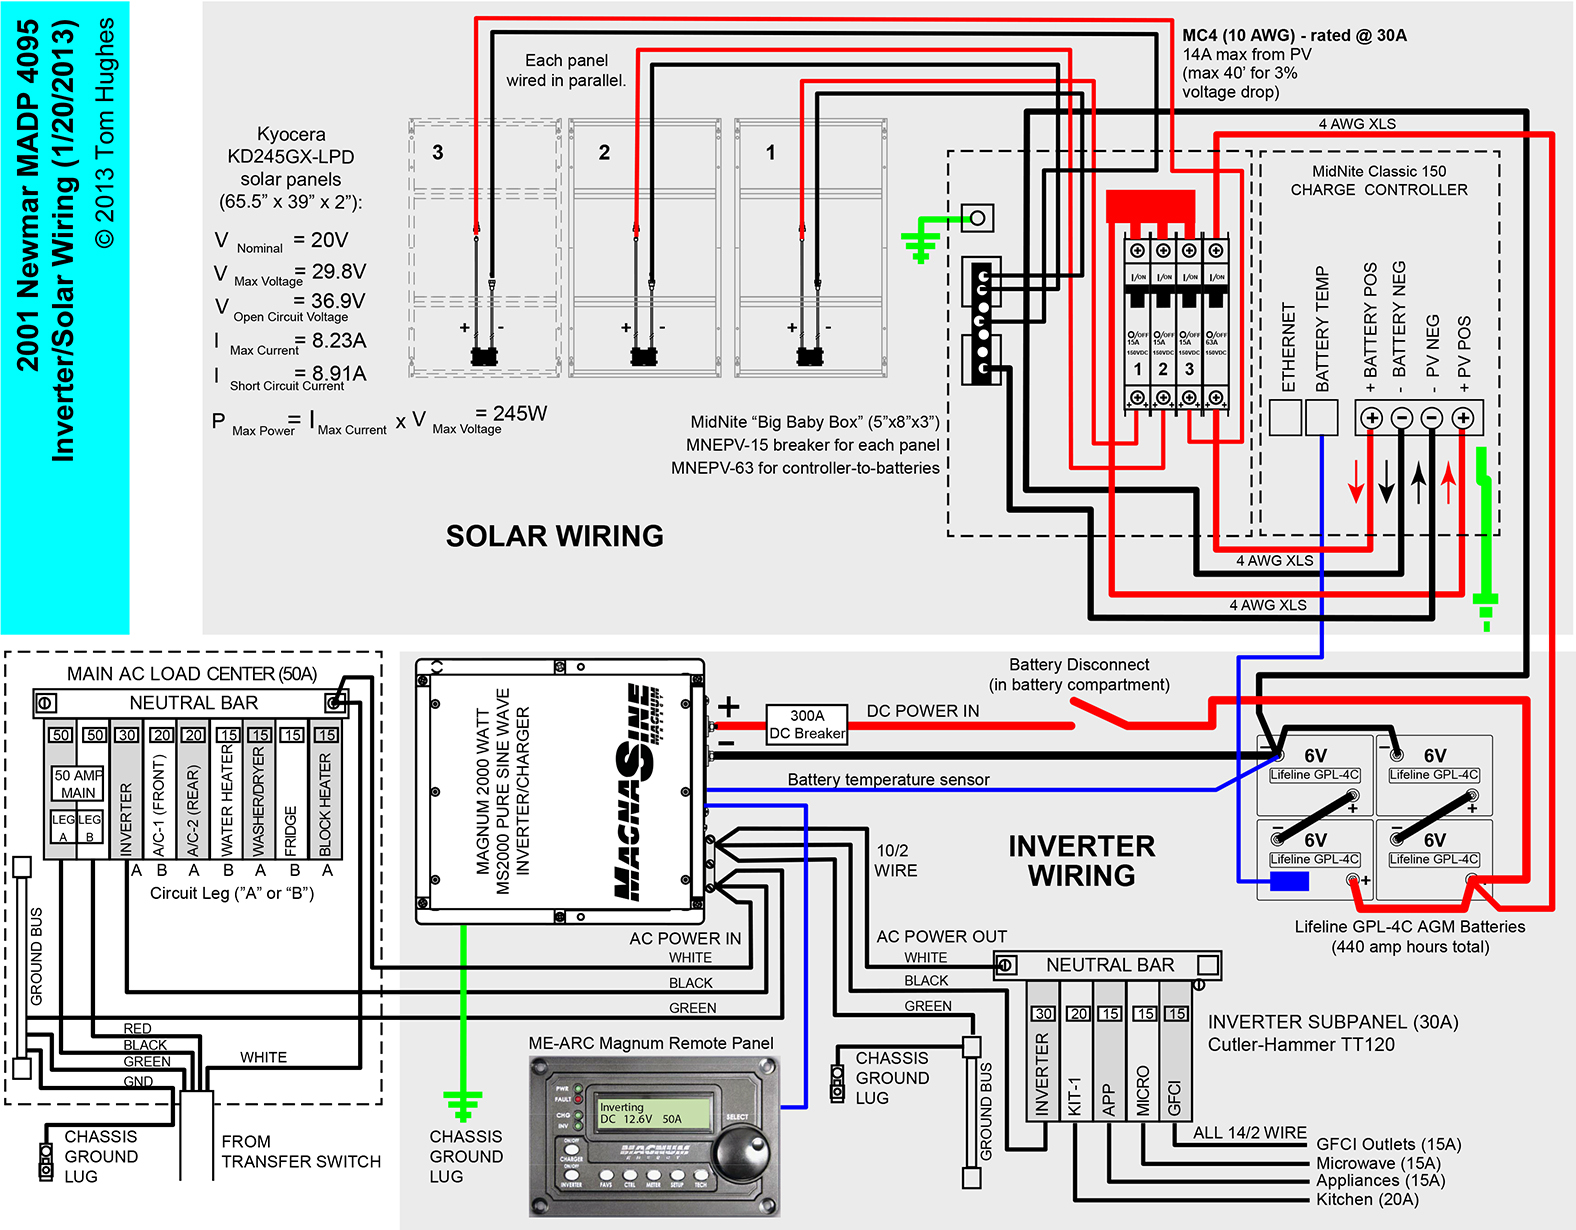 ms2000_newmar_inverter_wiring_01_20_2013 rv inverter diagram rv inverter transfer switch \u2022 wiring diagrams standard 7 pin rv wiring diagram at gsmx.co